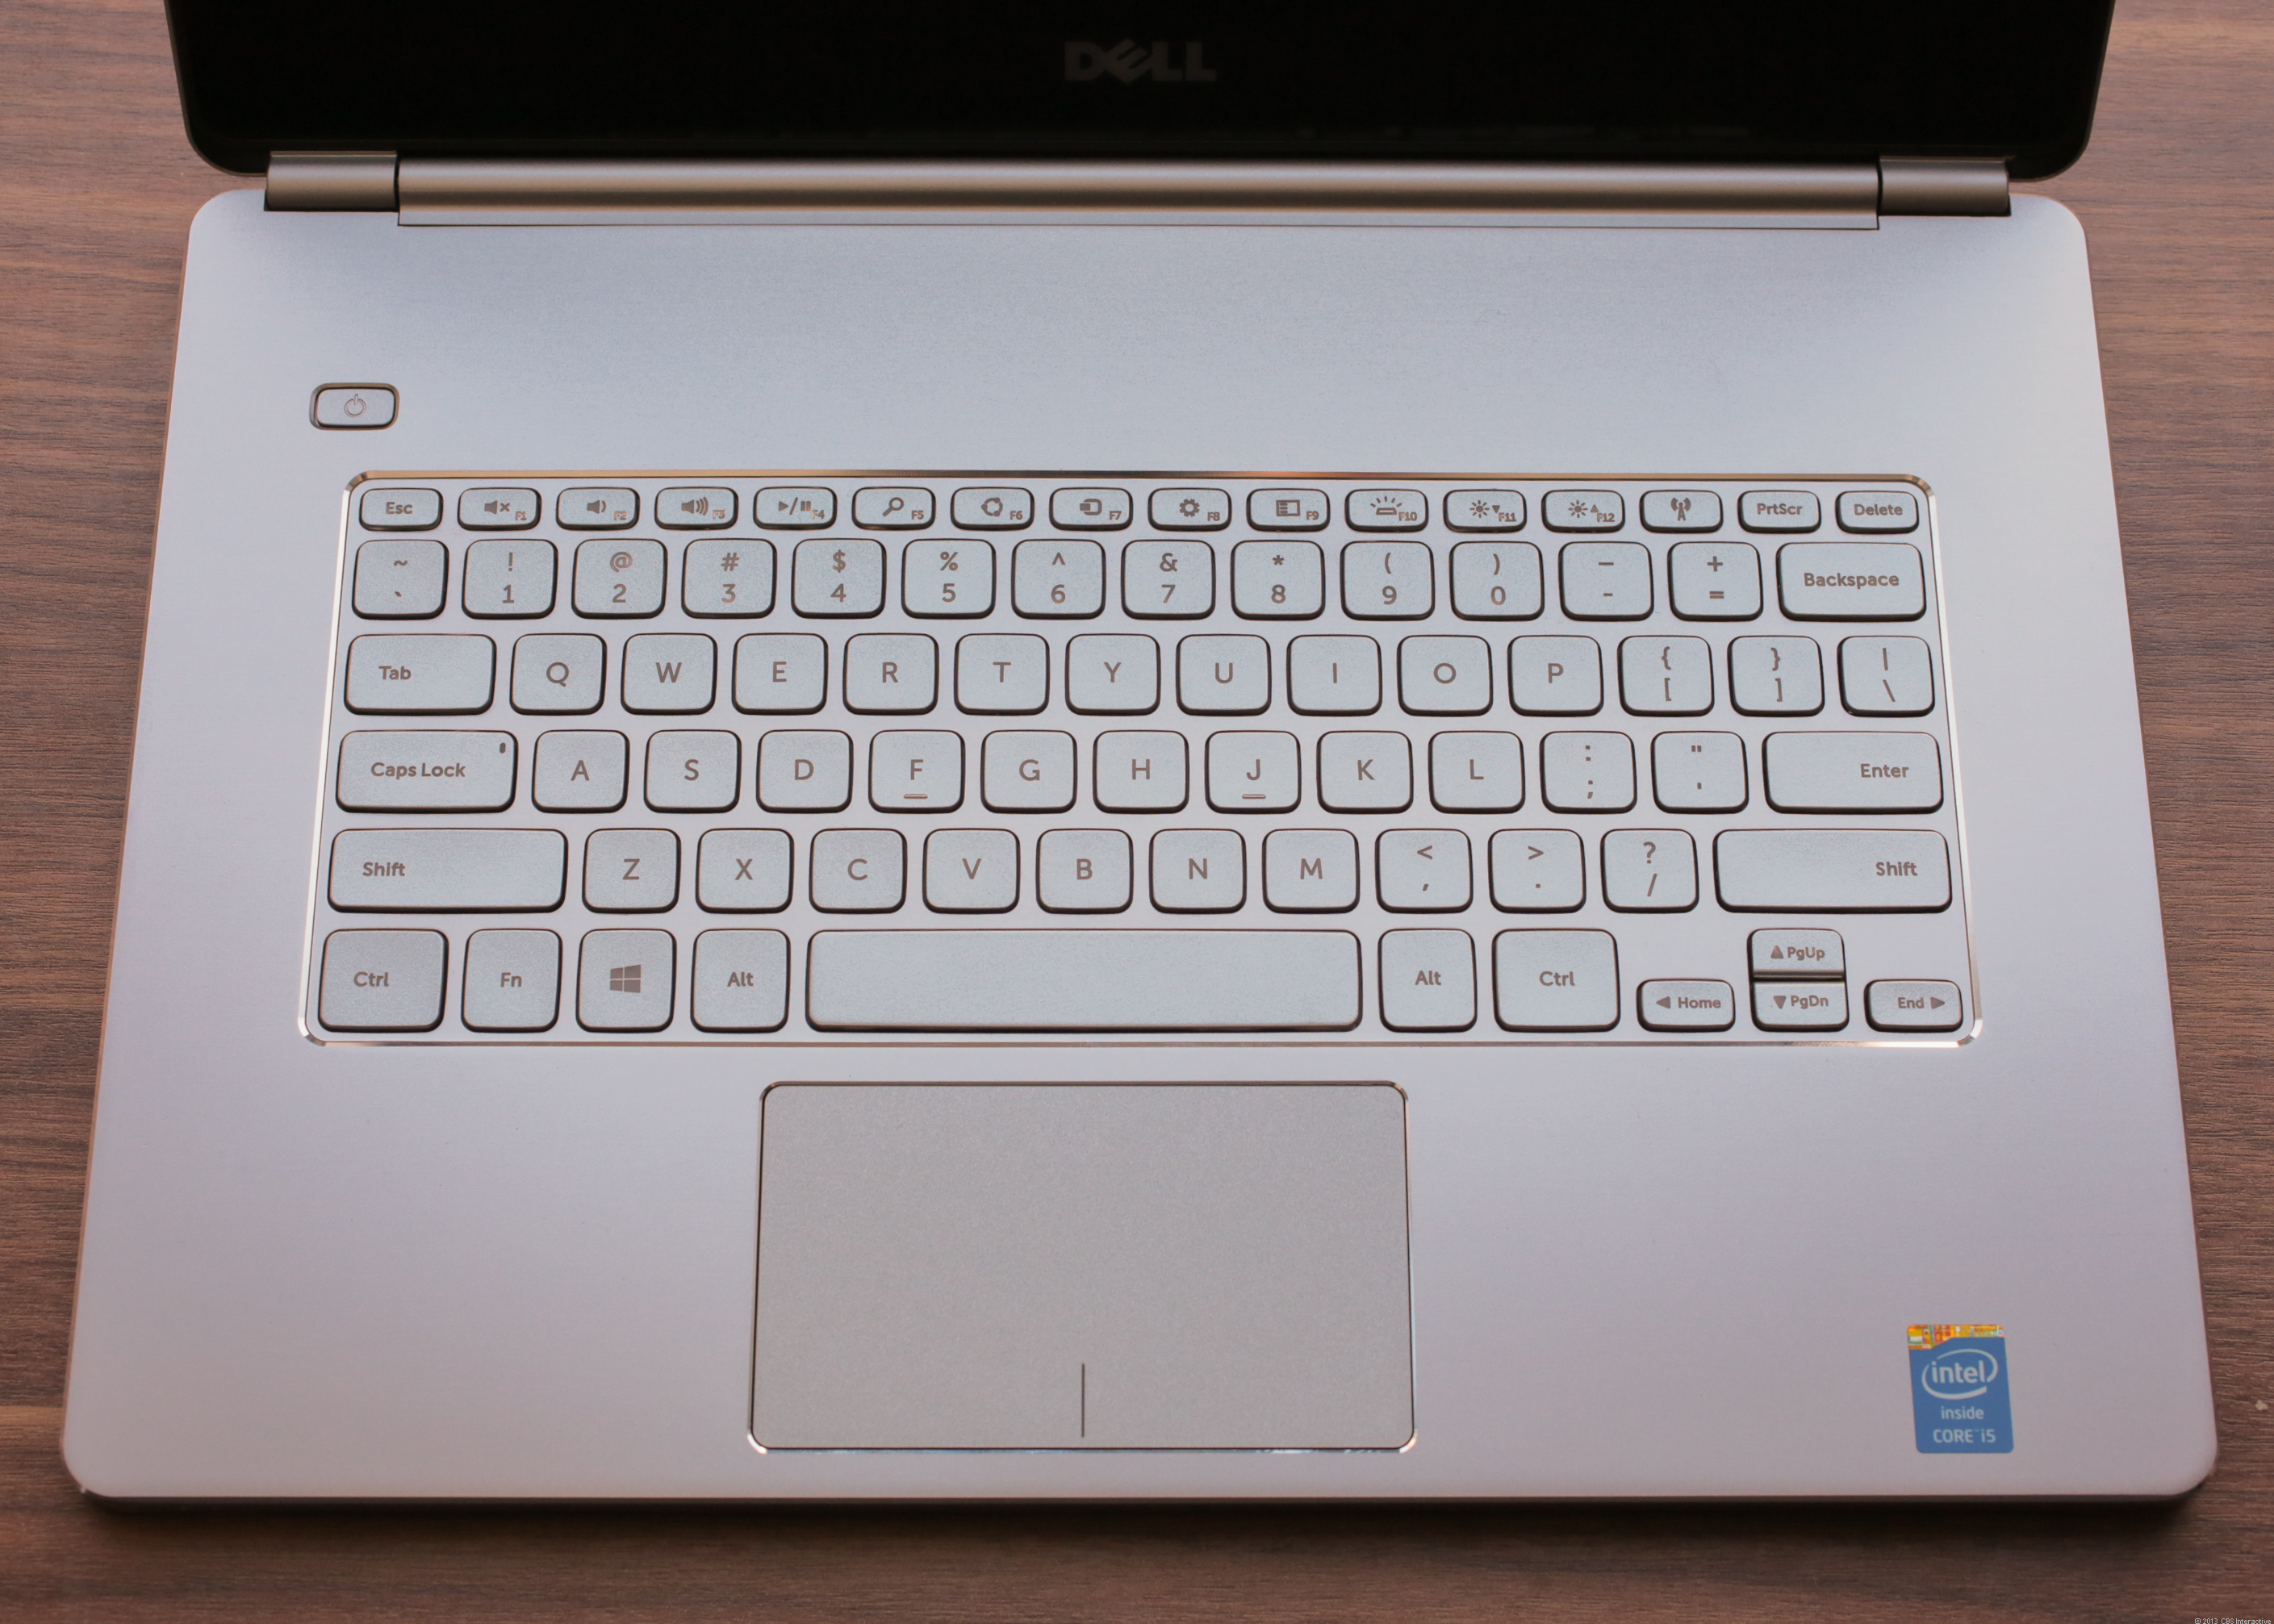 Keyboard and touch pad